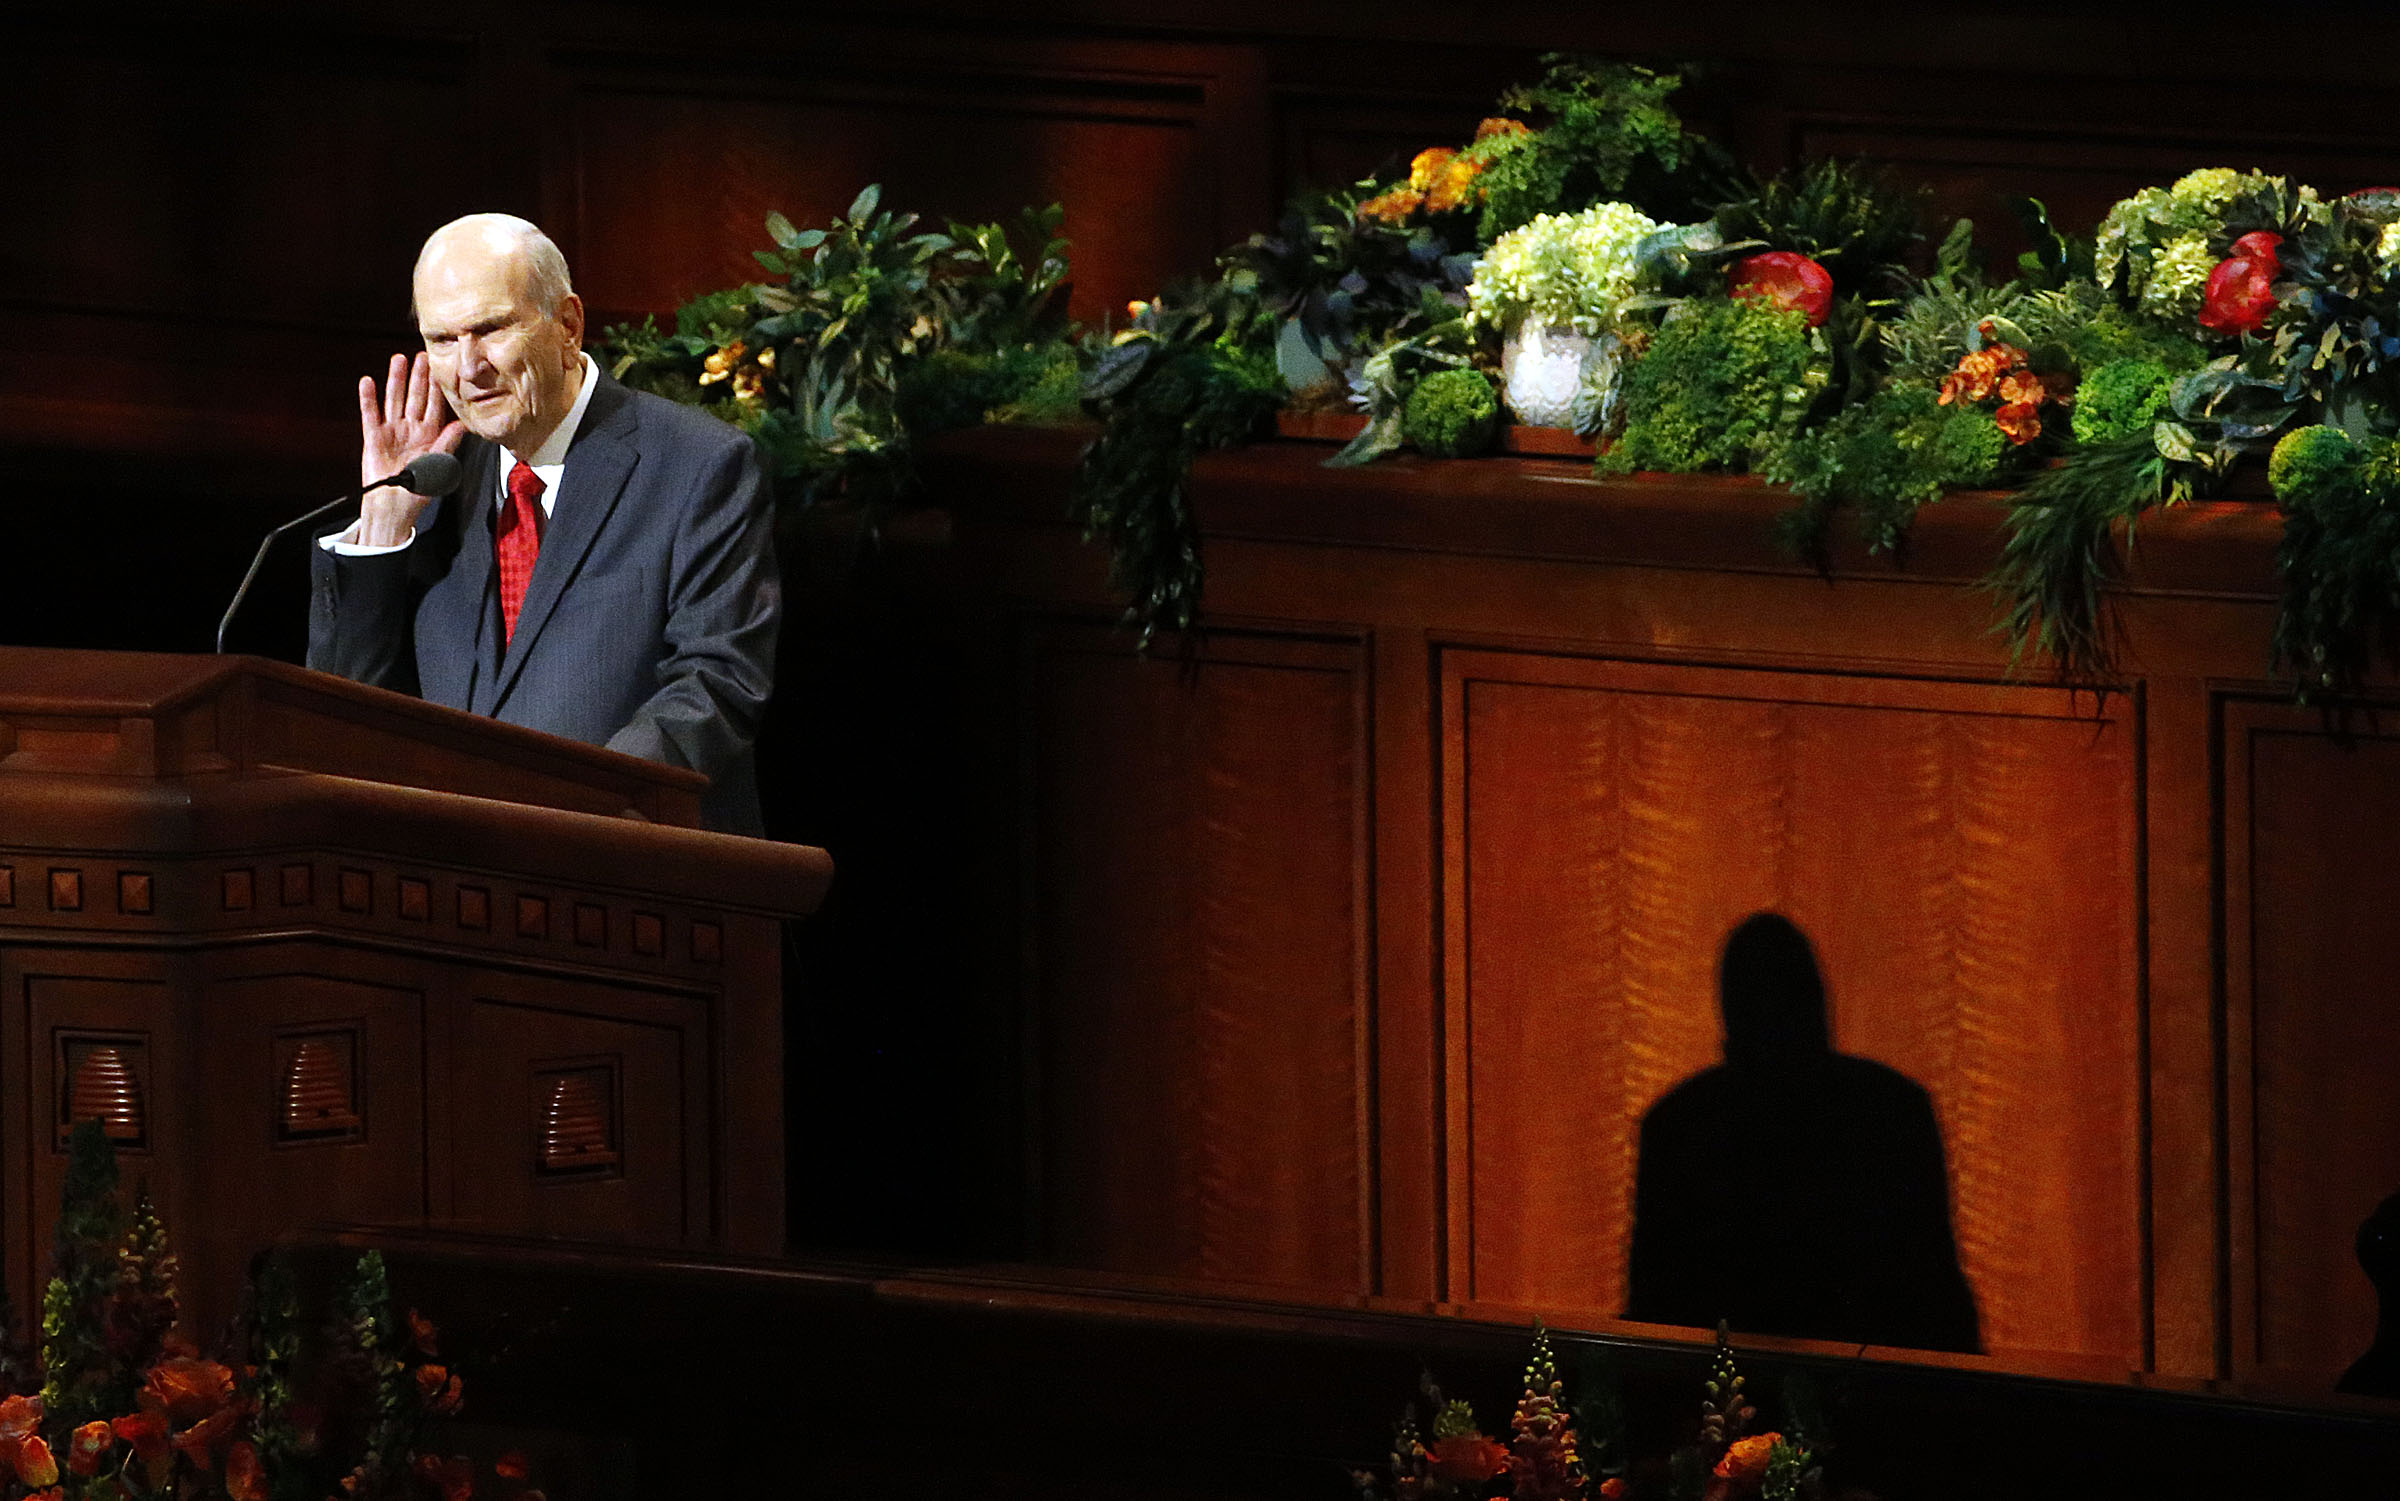 President Russell M. Nelson of The Church of Jesus Christ of Latter-day Saints tells priesthood holders to listen to their wives as he speaks during the priesthood session of the 189th Annual General Conference in the Conference Center in Salt Lake City on Saturday, April 6, 2019.